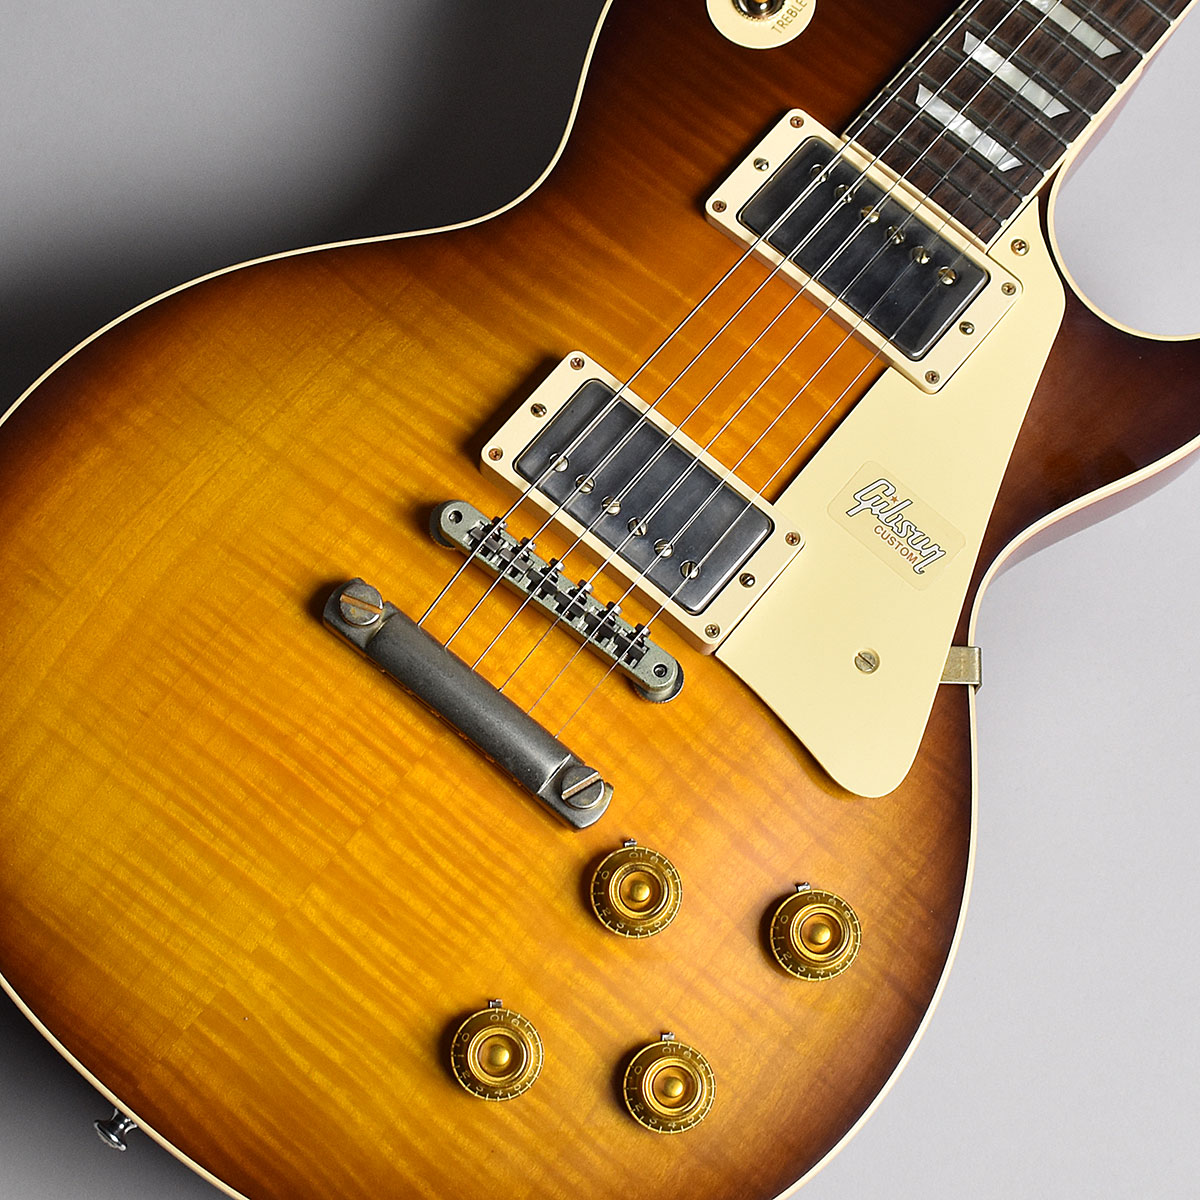 Gibson Custom Shop 1959 Les Paul Standard VOS Kindred Burst Fade S/N:982244 【ギブソン カスタムショップ】【未展示品】